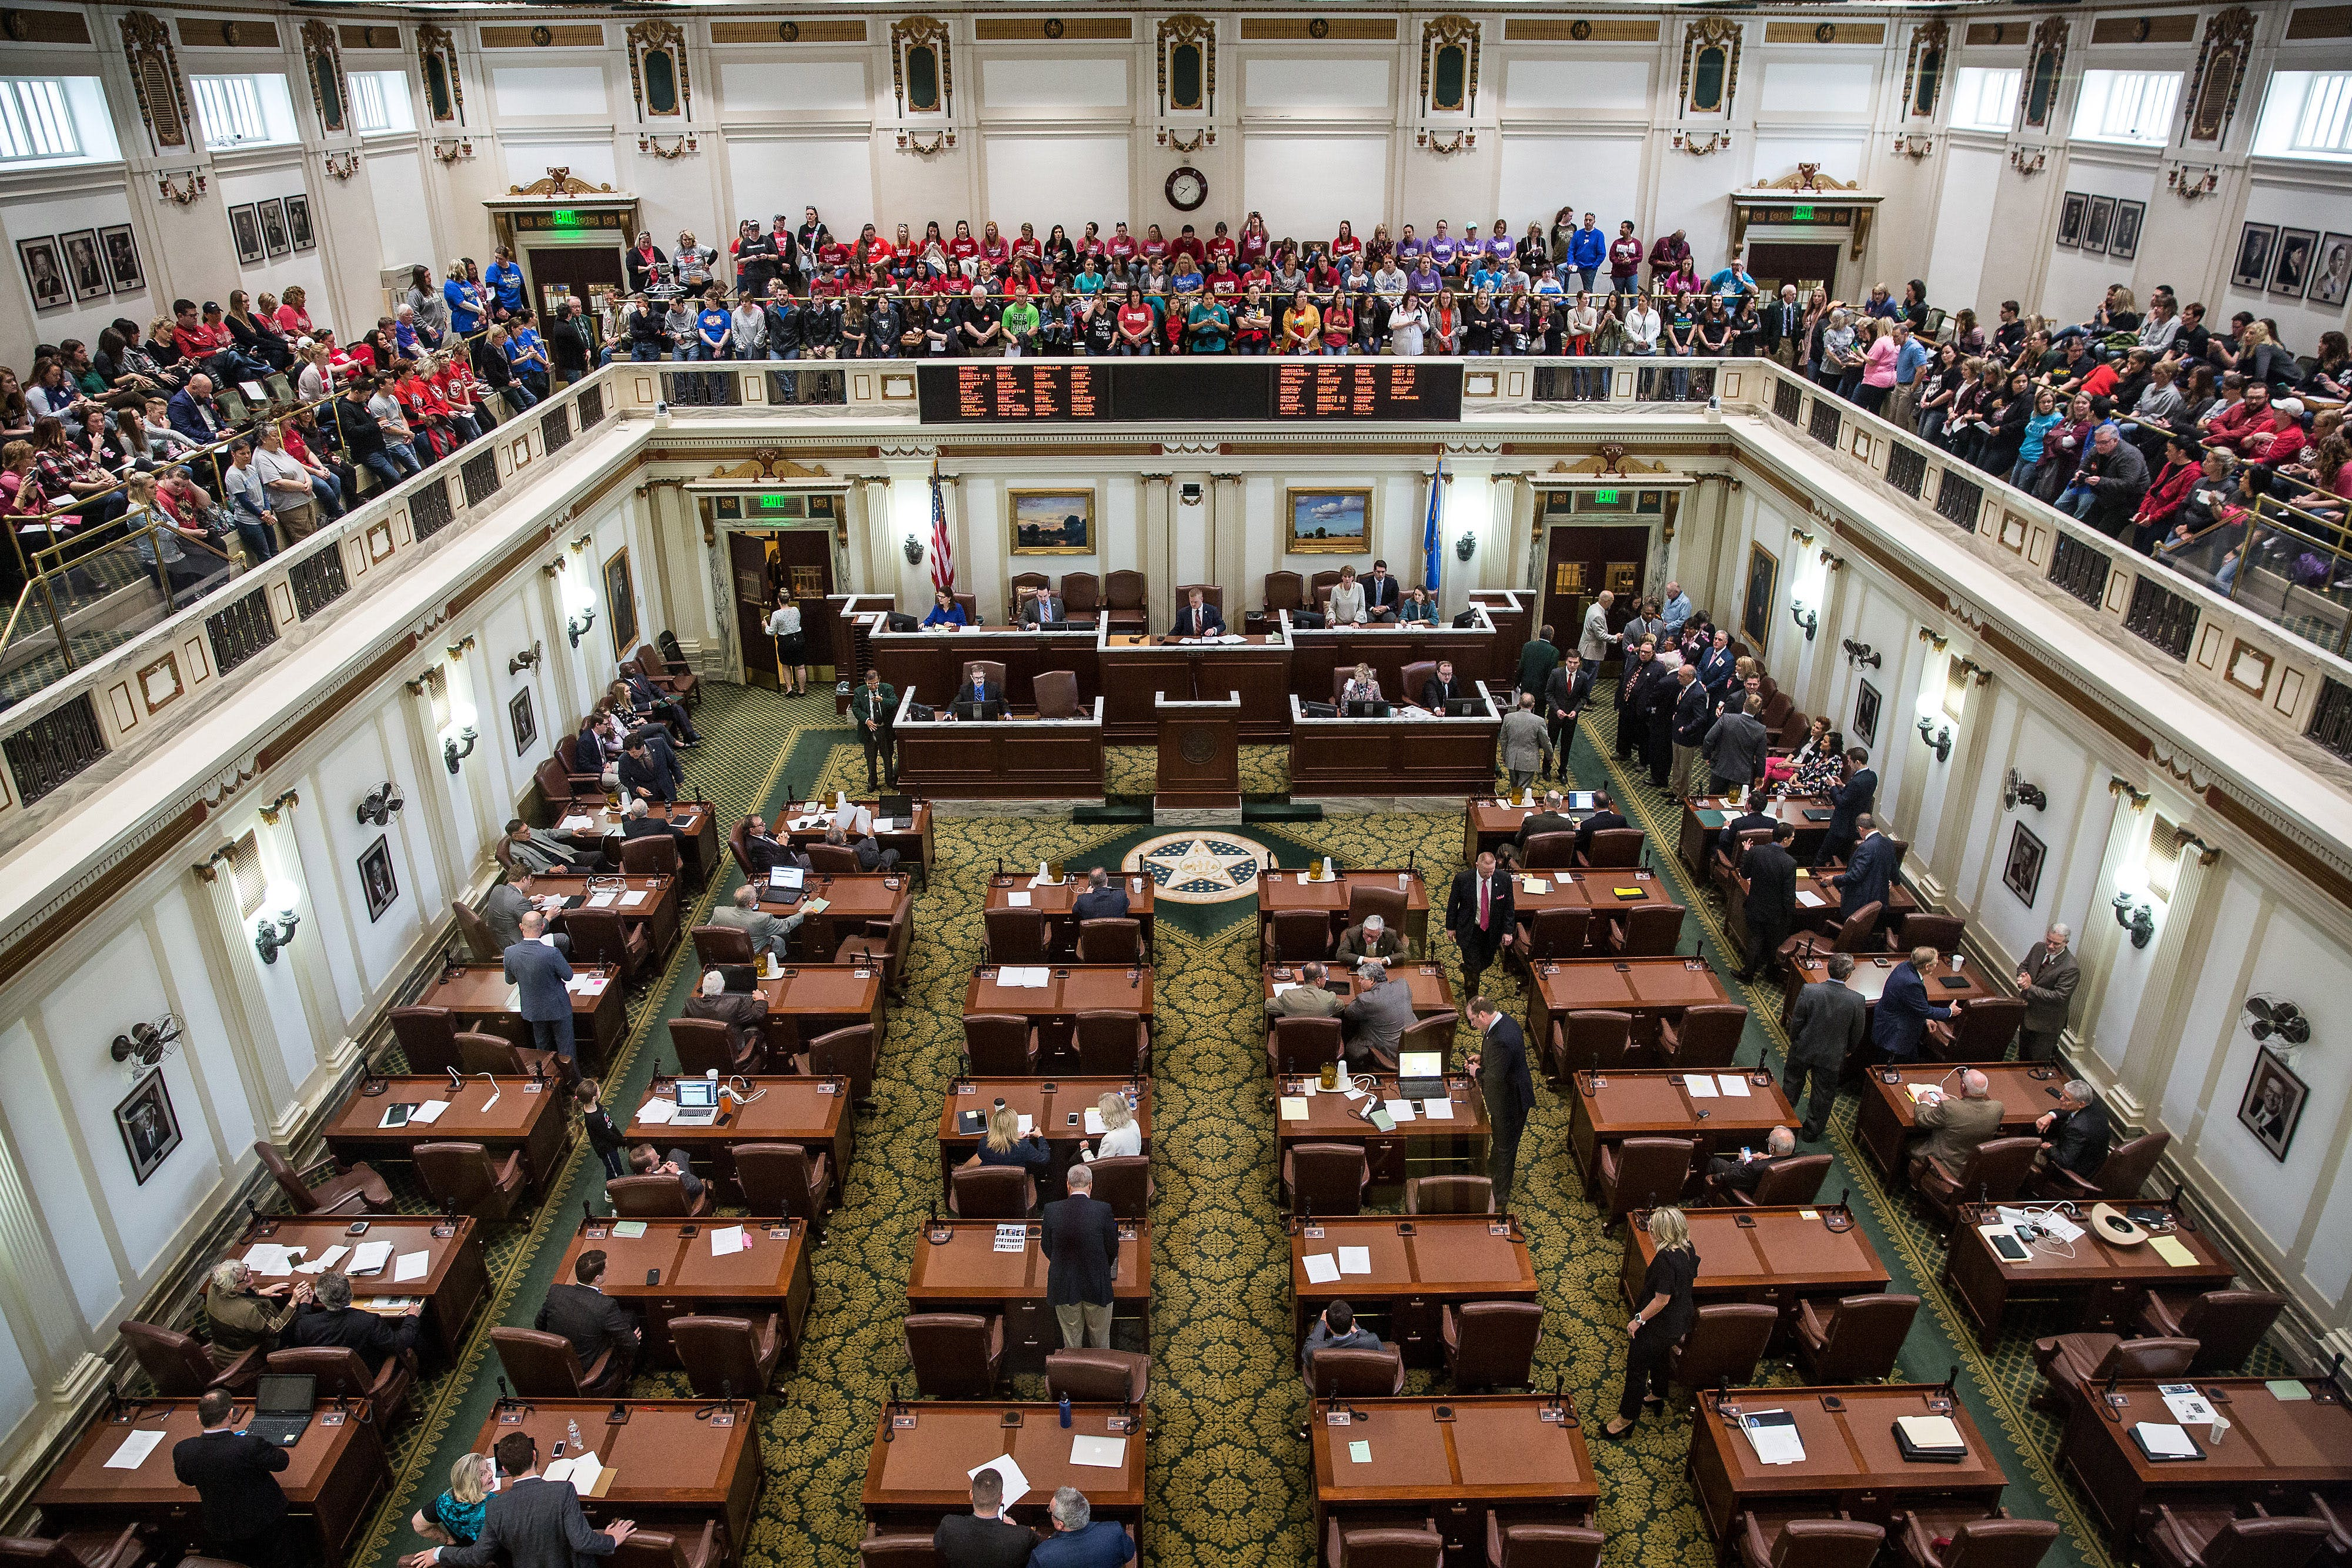 Teachers and demonstrators sit in the upstairs gallery inside the Oklahoma State Capitol building in Oklahoma City, Oklahoma, U.S., on Tuesday, April 3, 2018. Hundreds of teachers crowded into the Oklahoma Capitol for a second day Tuesday to press demands for additional funding for the state's public schools. Photographer: Scott Heins/Bloomberg via Getty Images